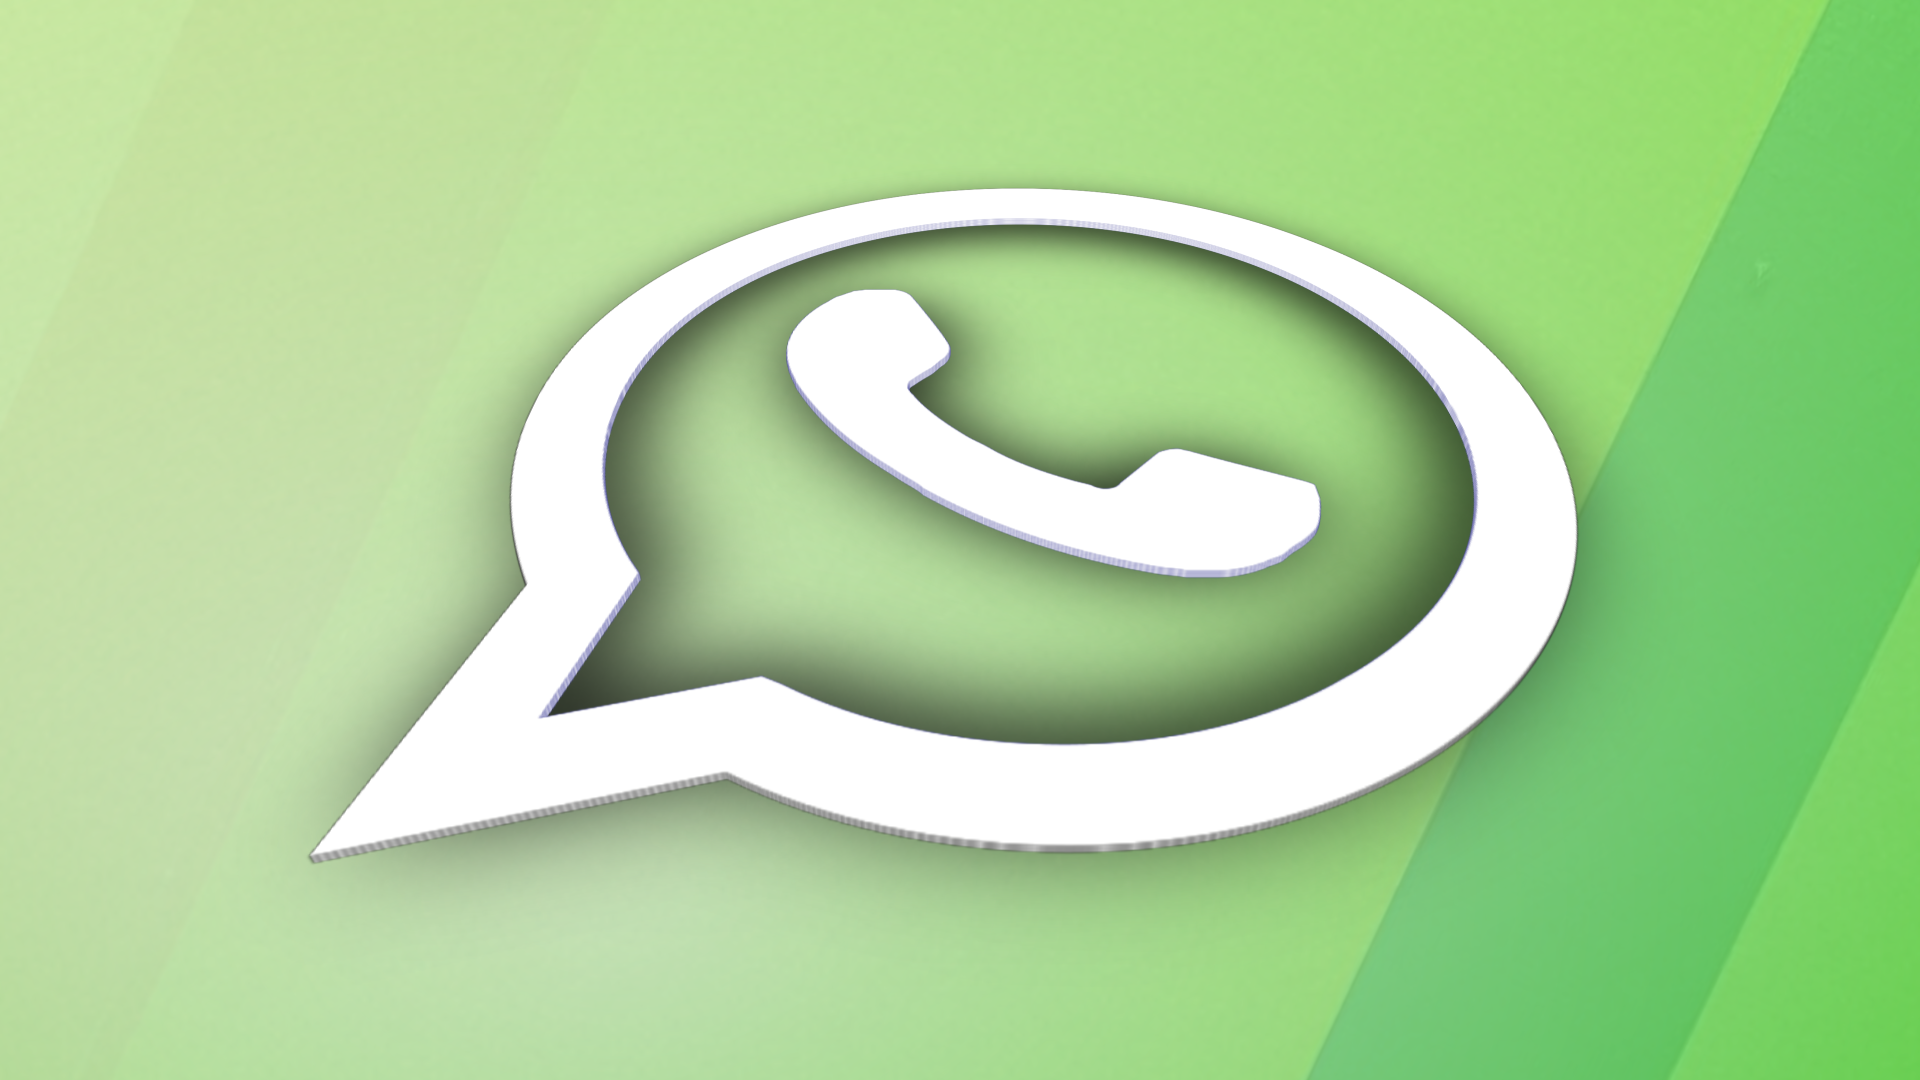 WhatsApp vulnerability exposed civil rights promoters to